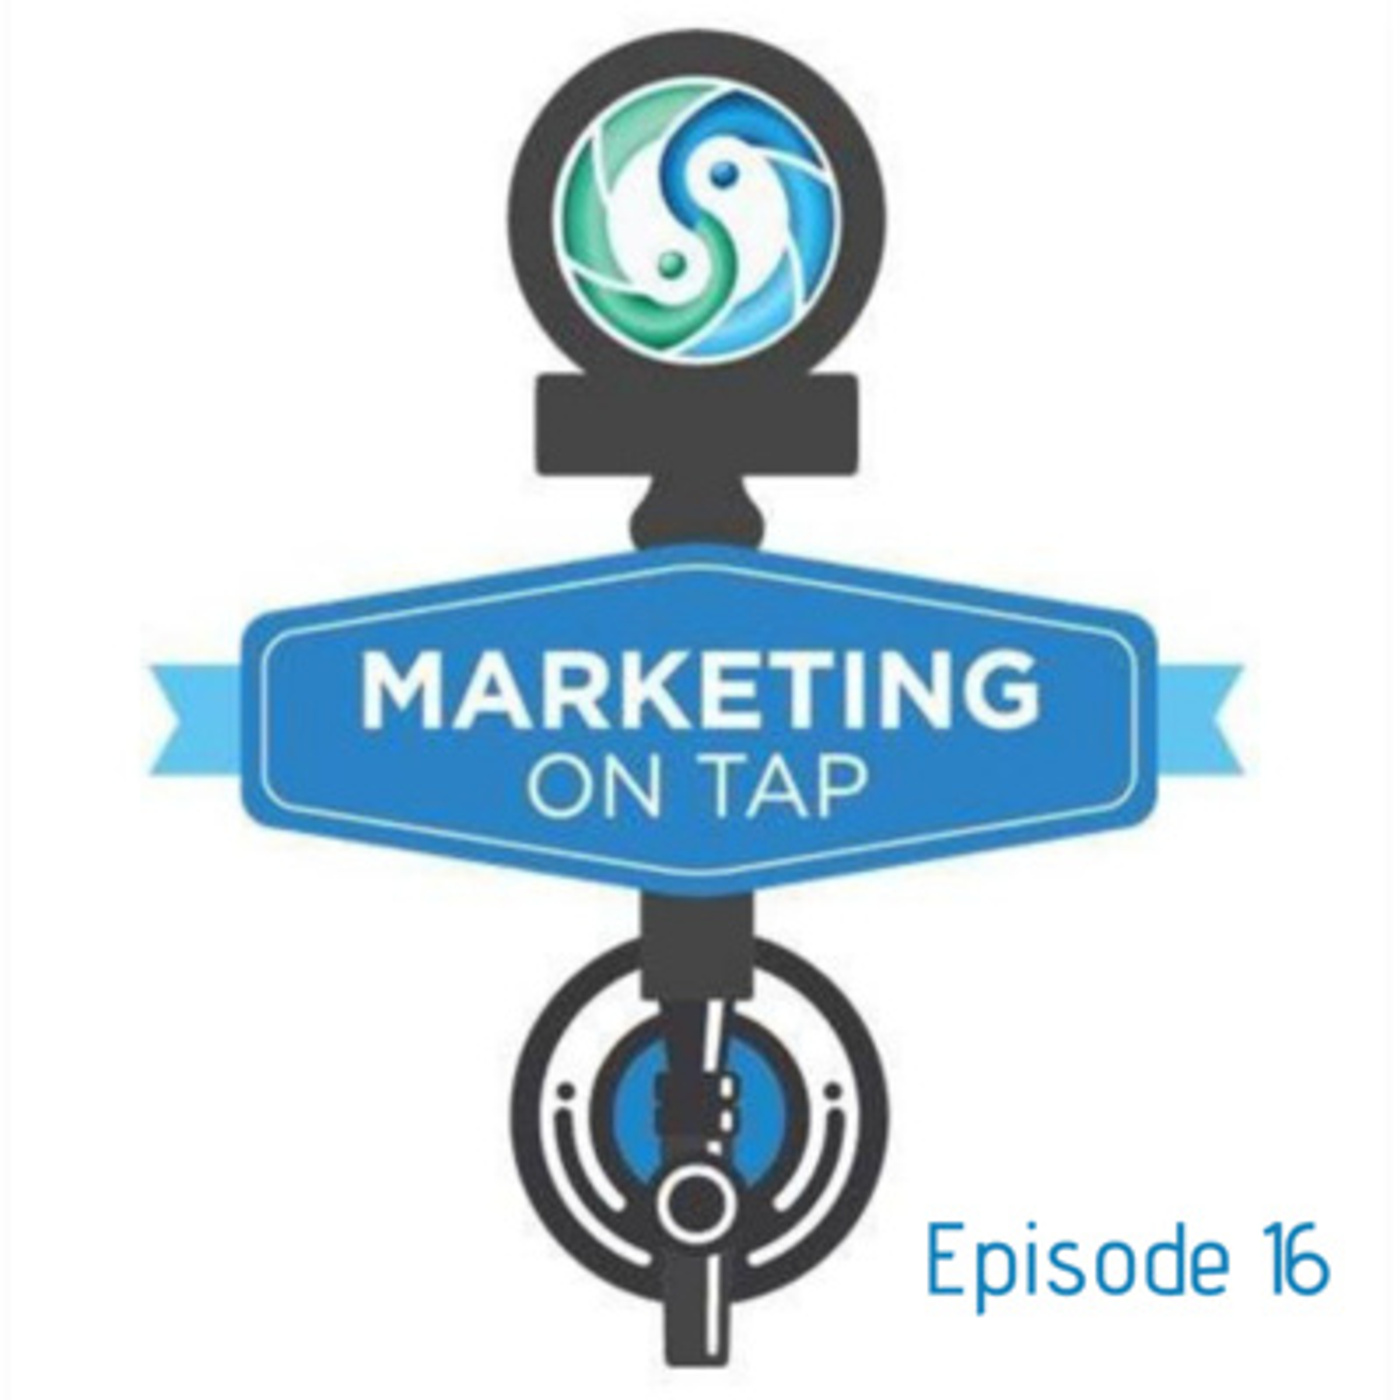 Episode 16: YouTube Influencers, Brand Responsibility, & Mental Health Burnout